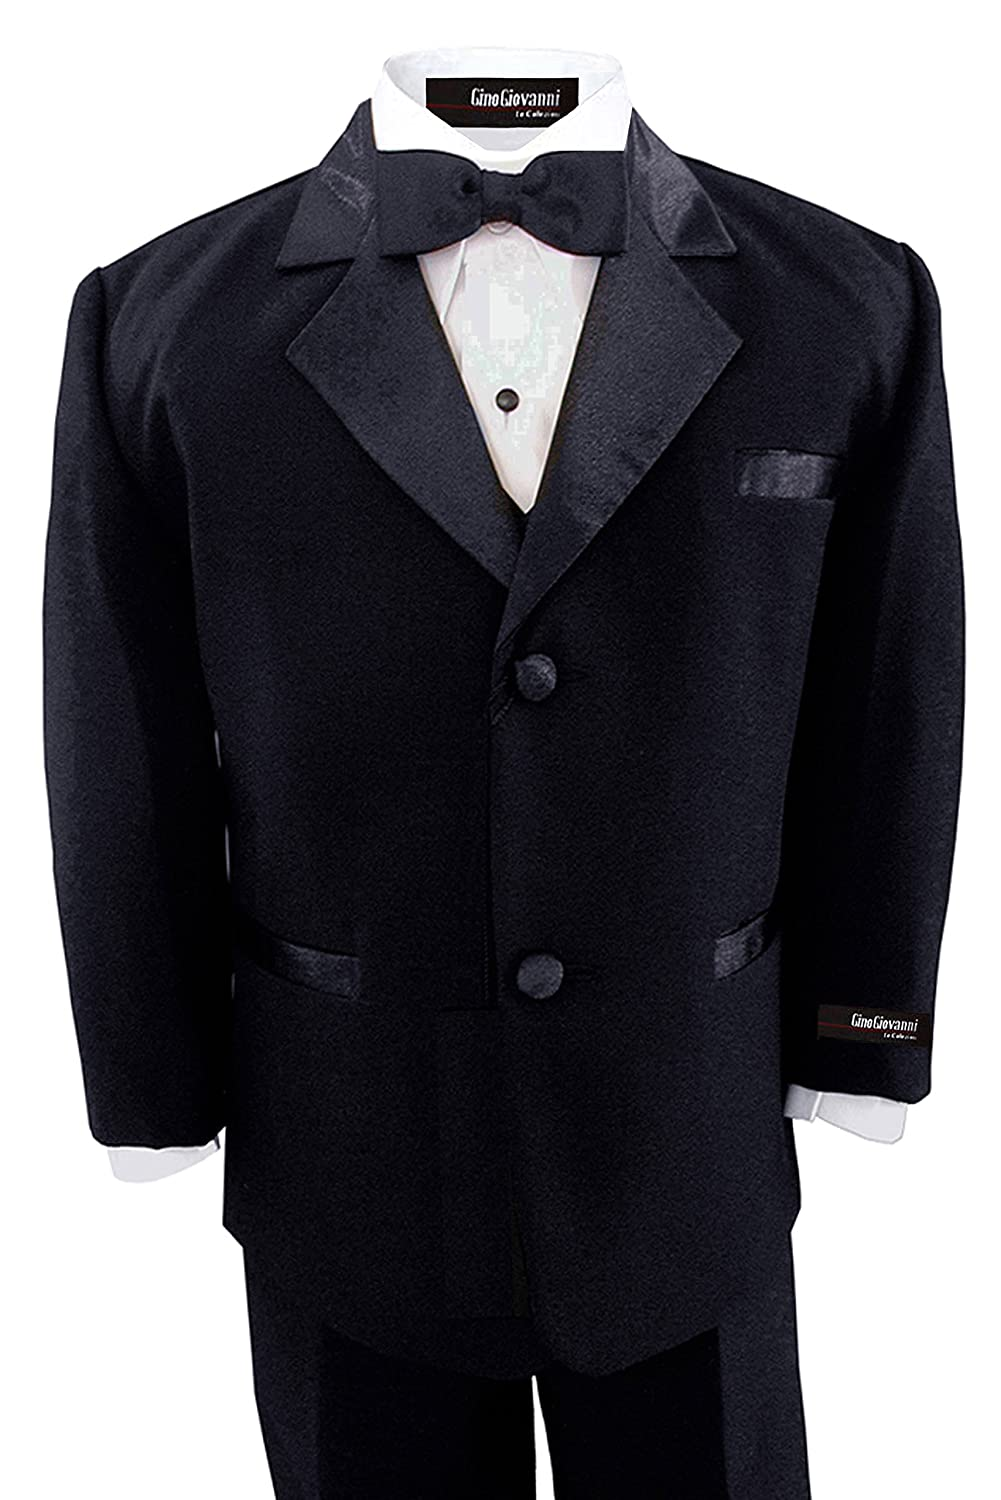 Gino Giovanni Black Usher Toddler Boy Tuxedo Size 3/3t (3T)